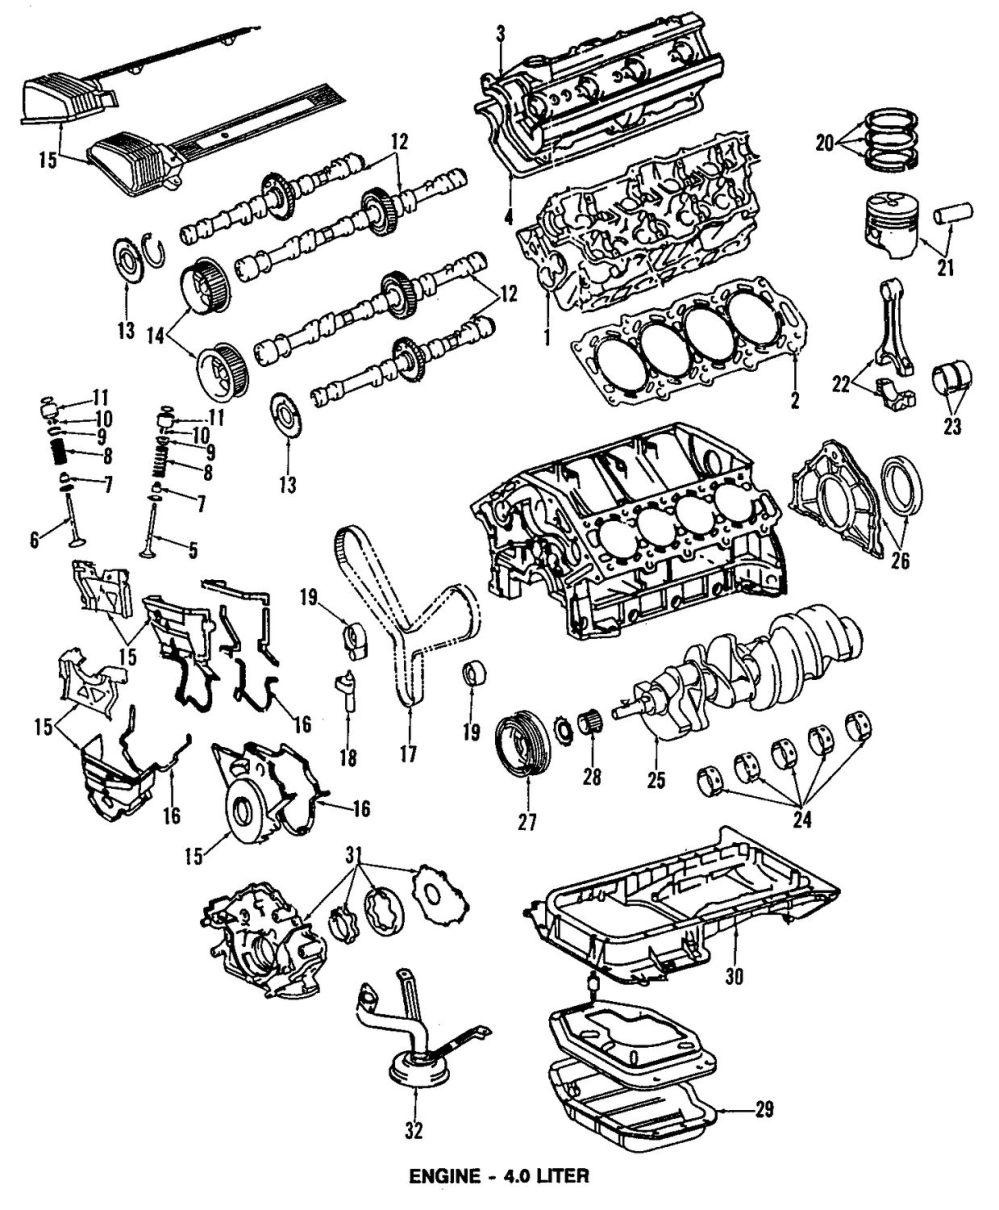 medium resolution of lexus sc400 engine diagram wiring diagrams lfa engine diagram diagram 1997 lexus engine